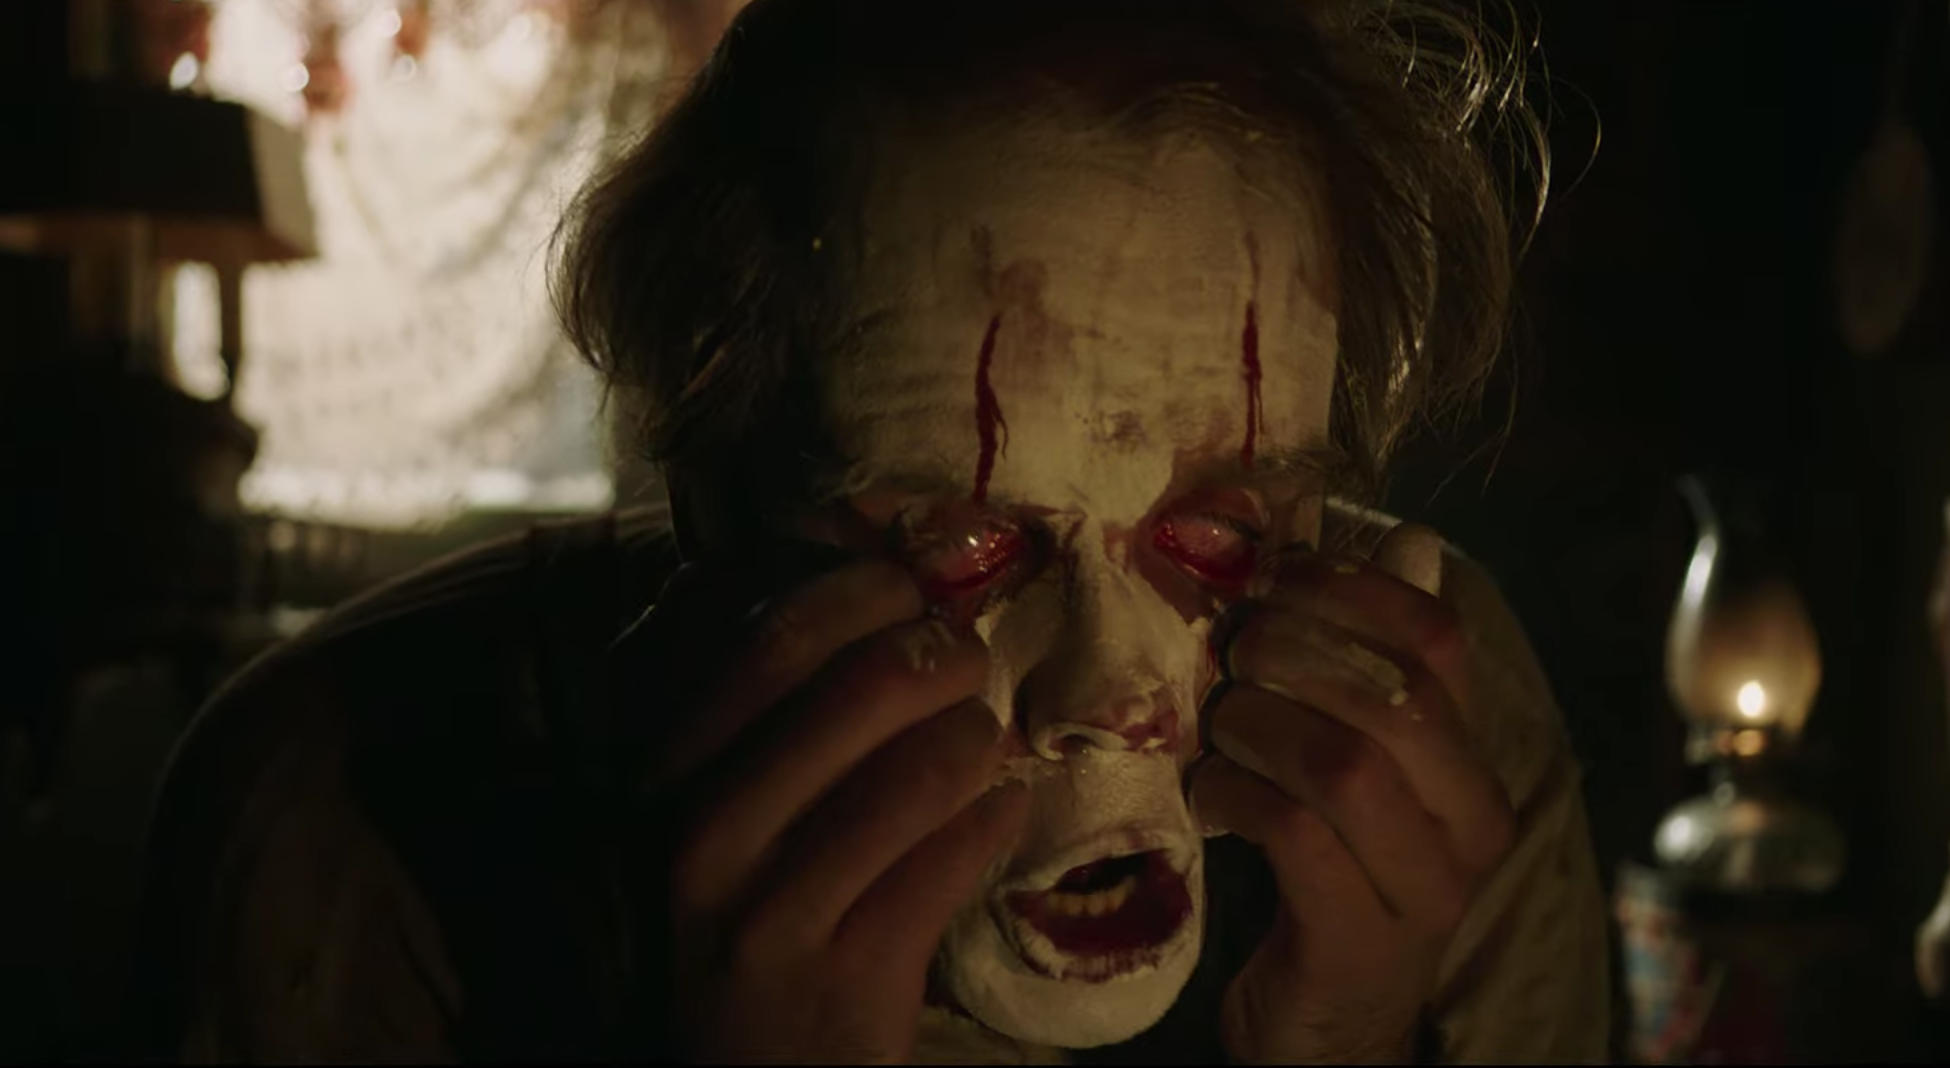 'It: Chapter 2' Trailer Breakdown: The 15 Most Terrifying and Revealing Shots